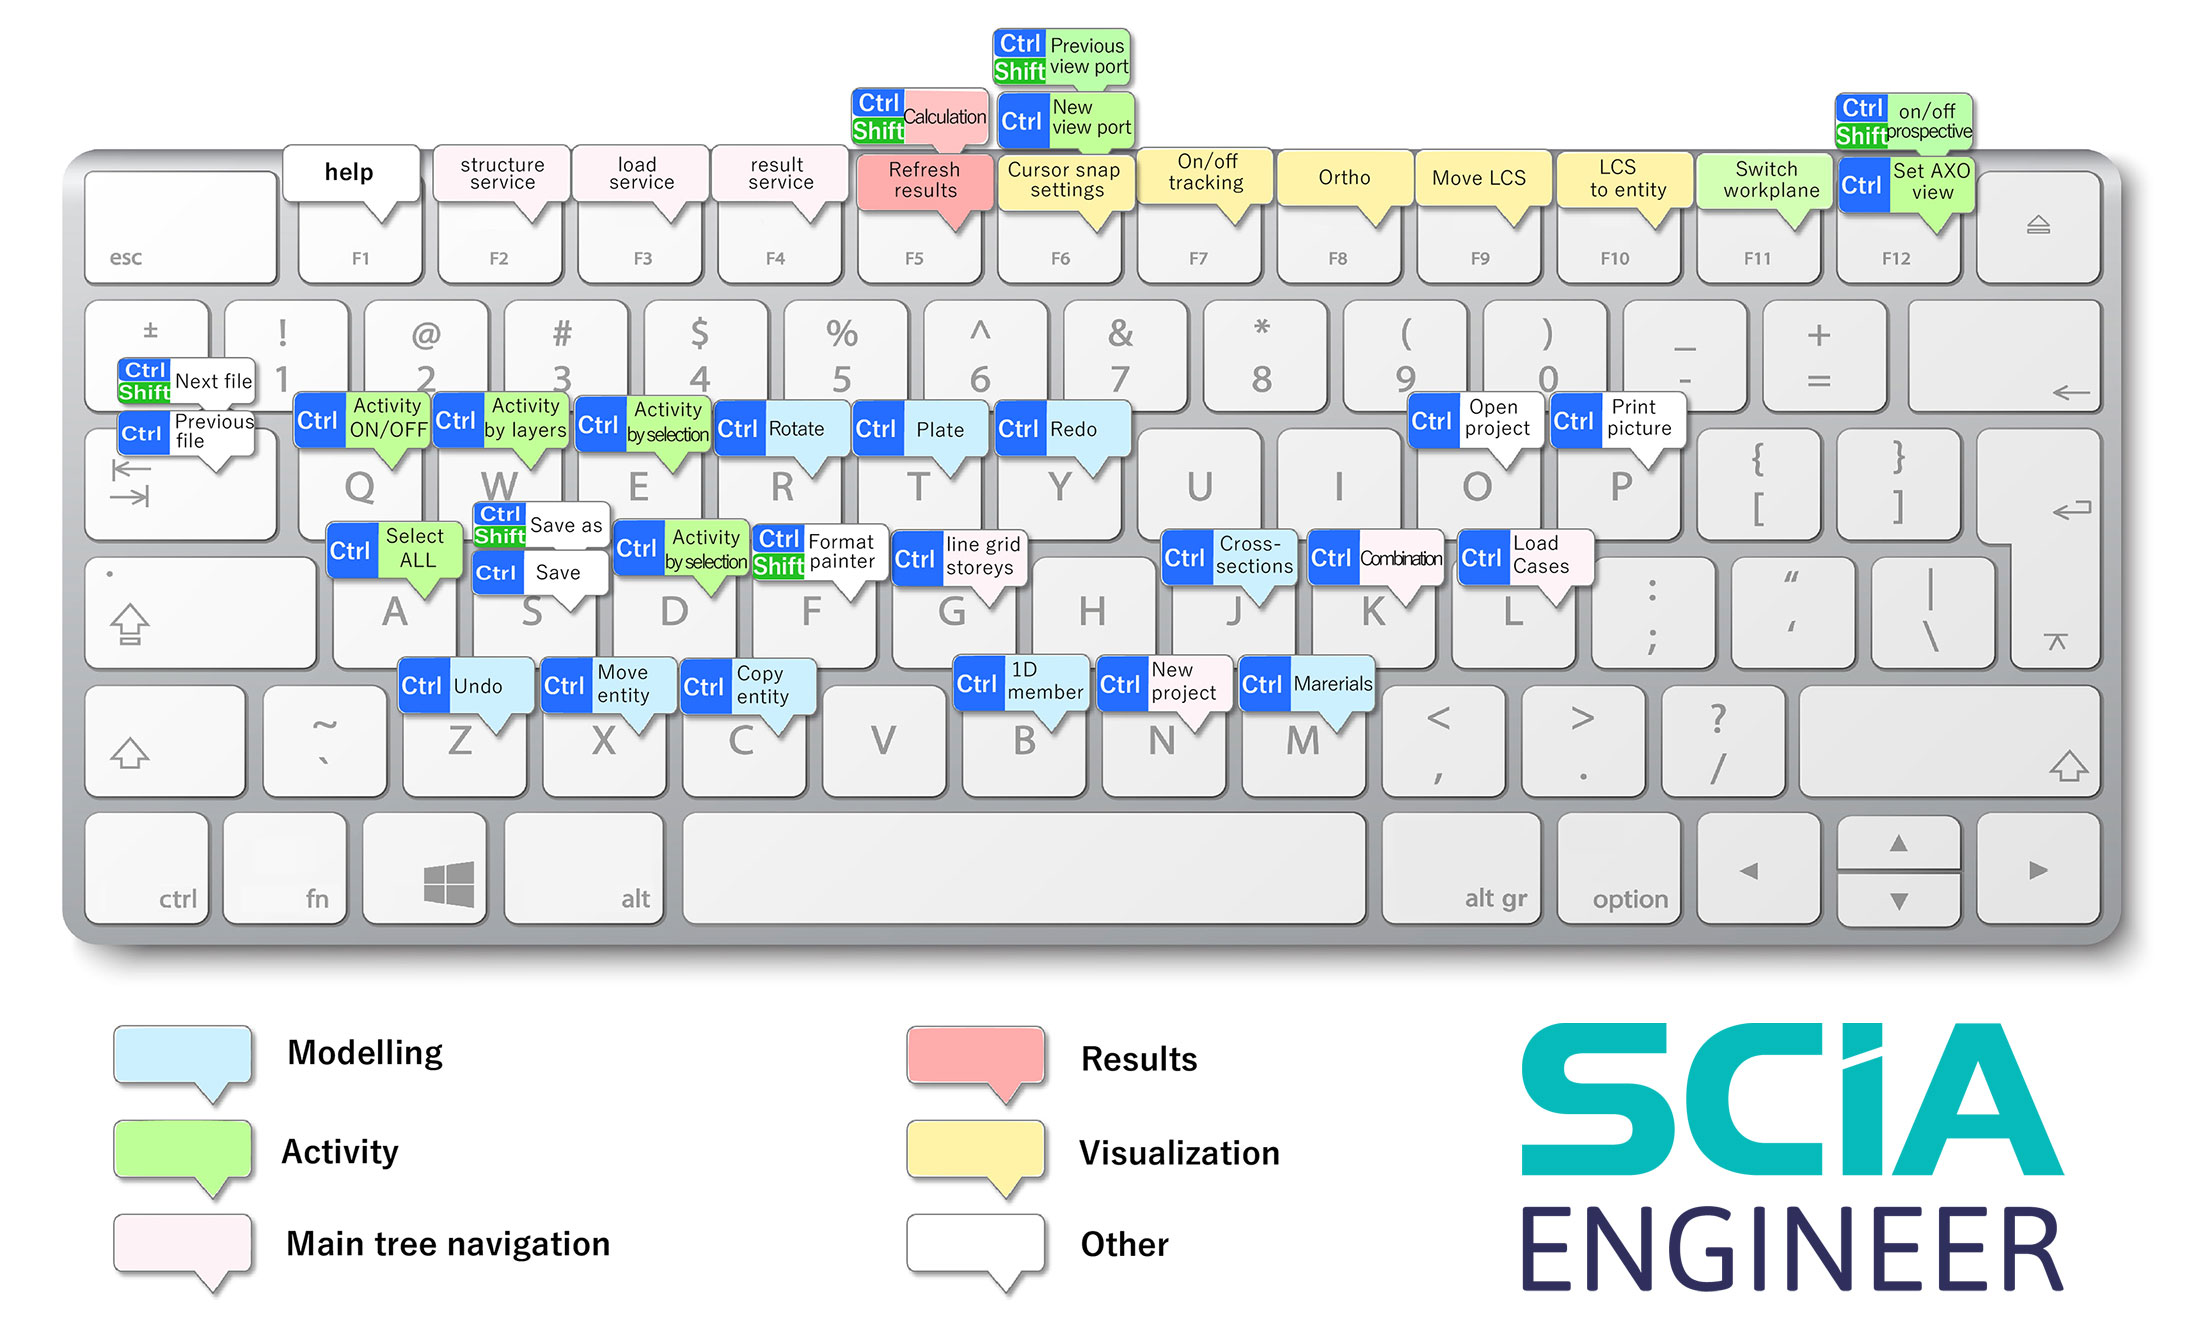 FAQ: How to use SCIA Engineer keyboard shortcuts